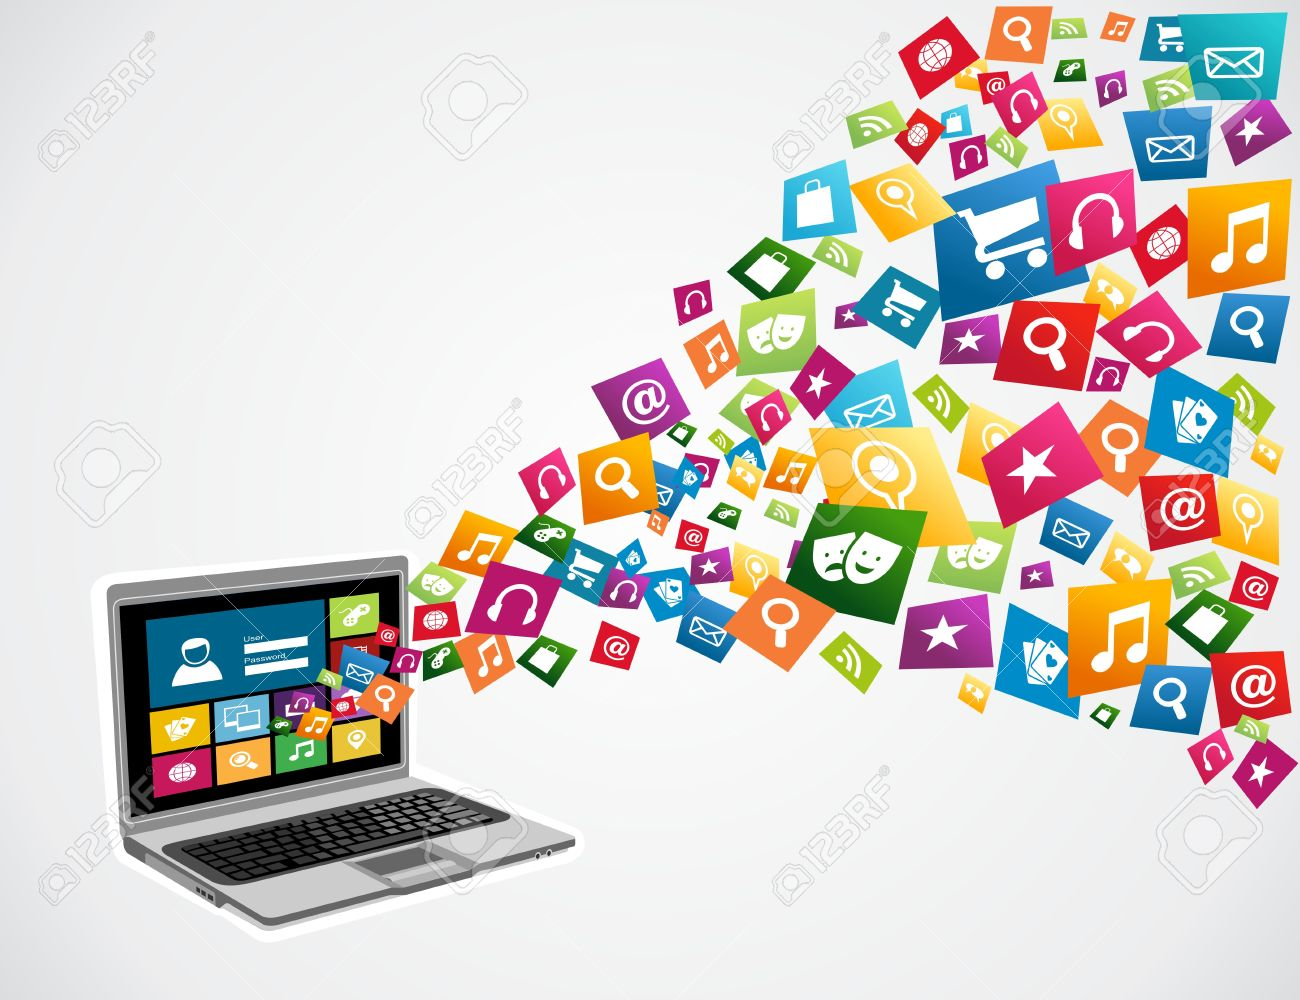 dear i will give you 20 high quality social bookmarking with high DA/PA